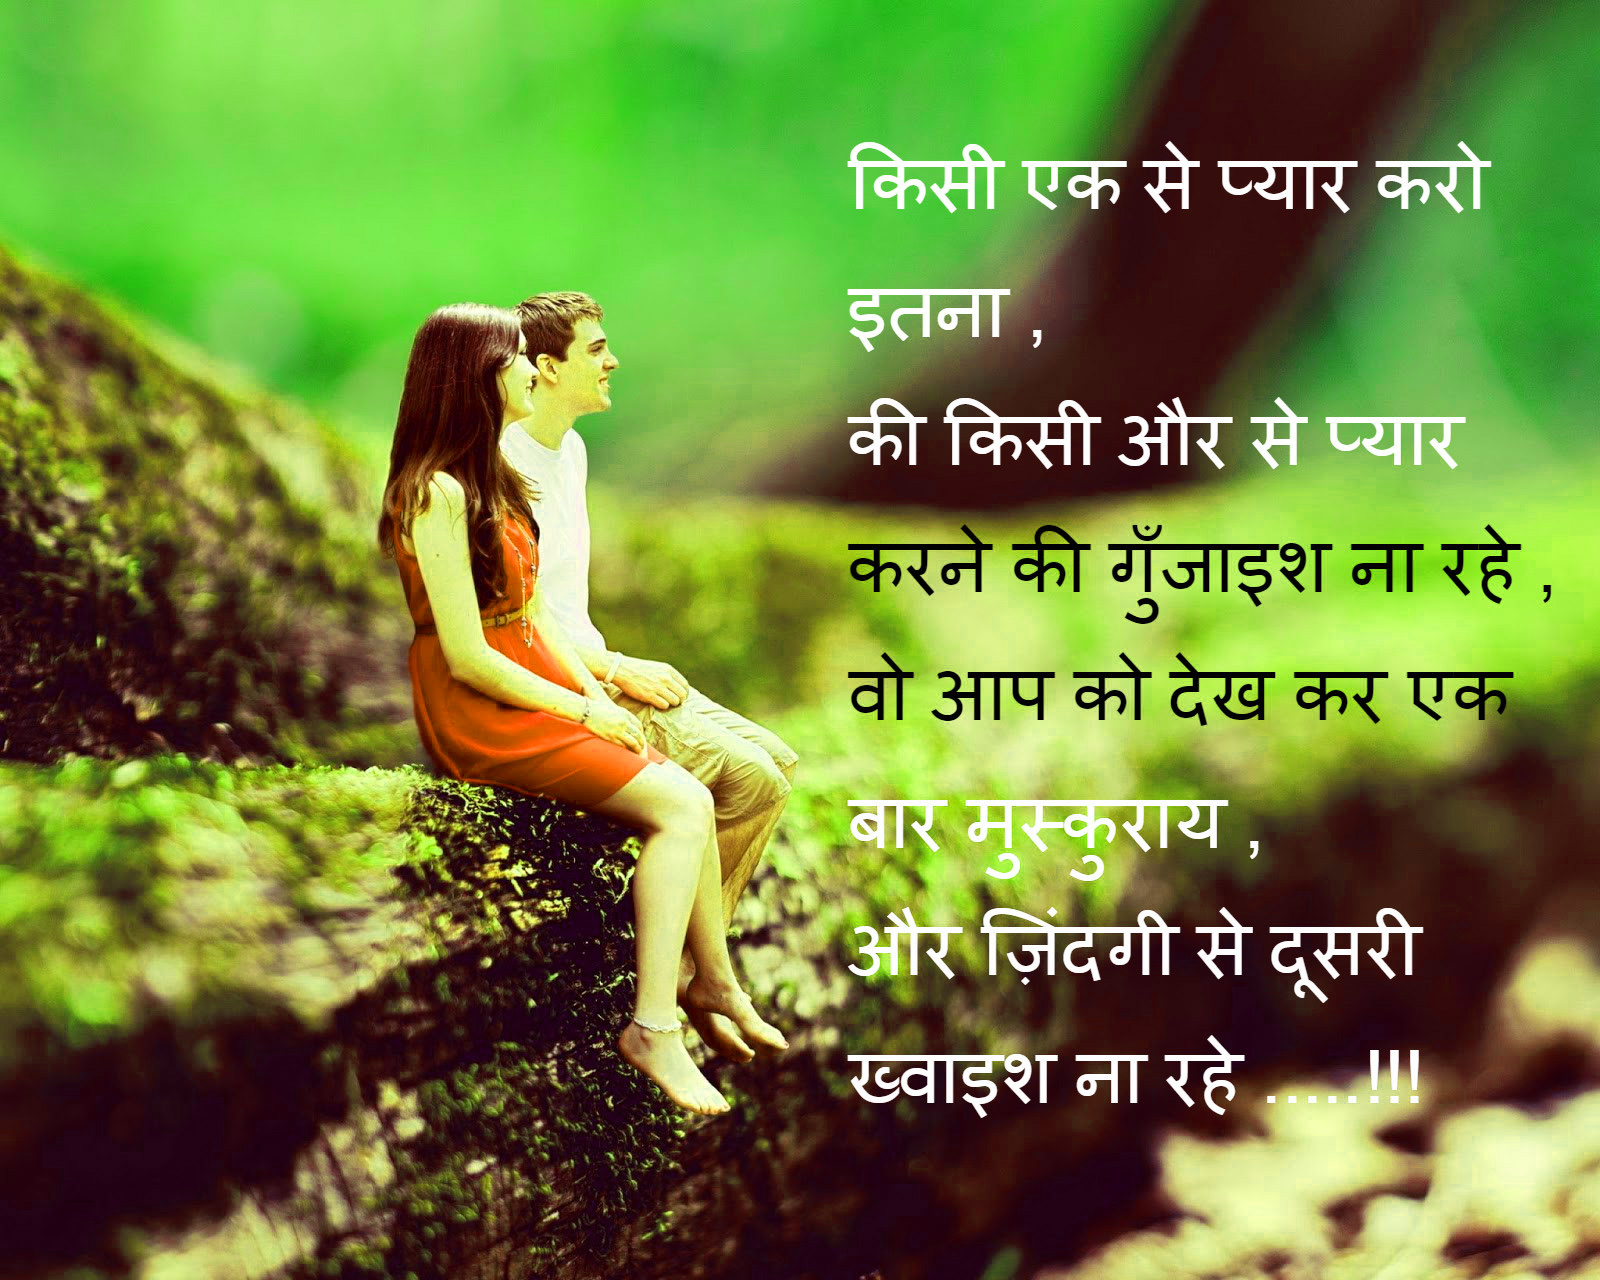 Hindi Sad Love Romantic Shayari Images Pictures Photo HD Download